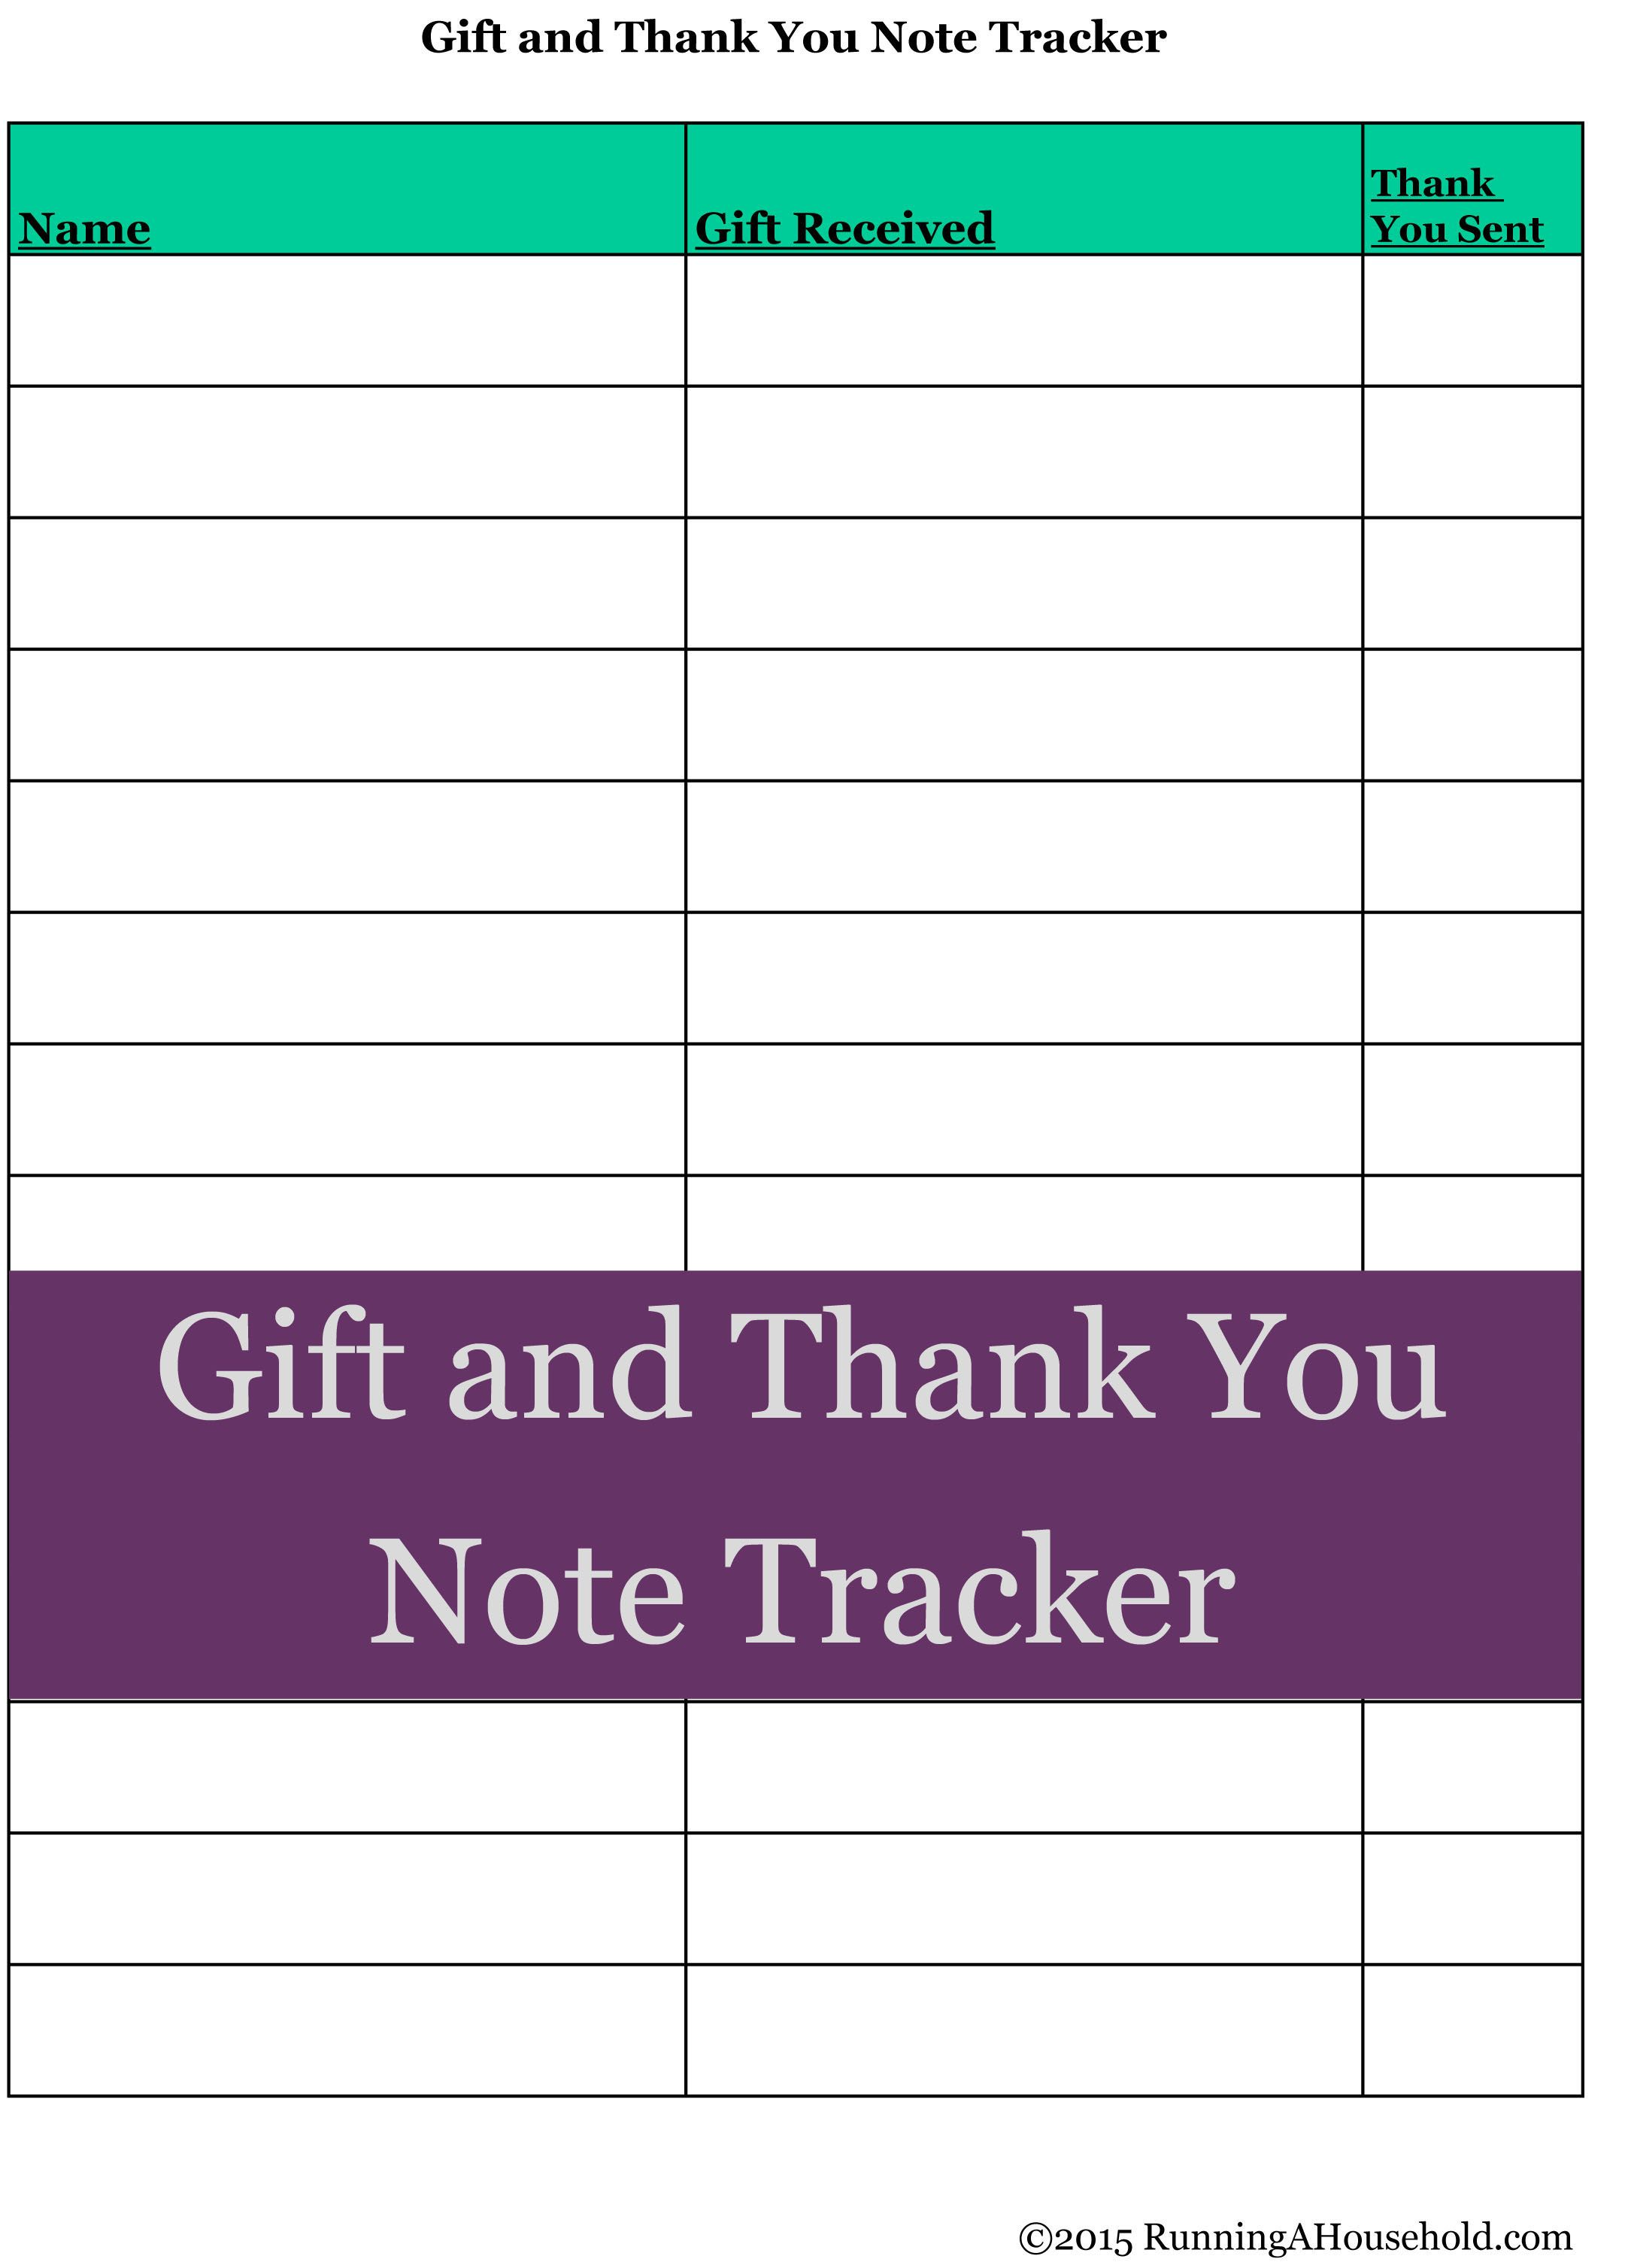 Gift and Thank You Note Tracker; great printable chart for